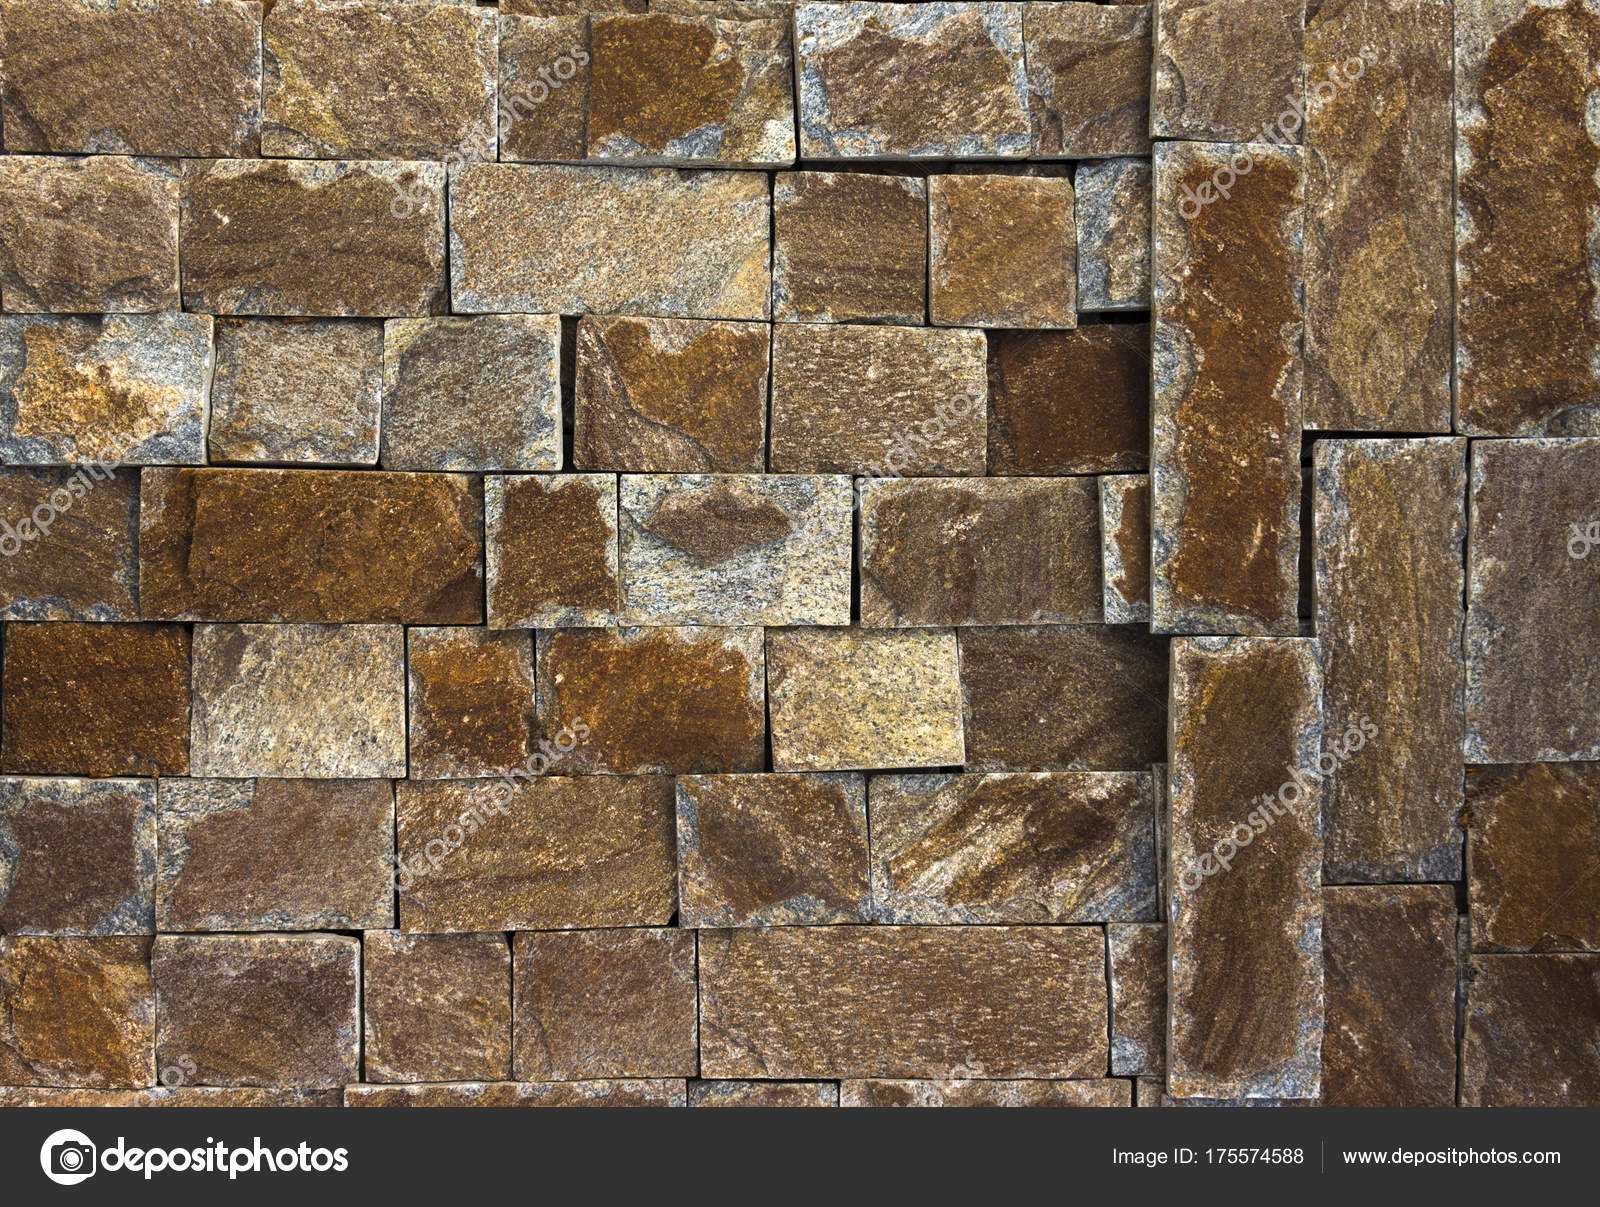 Brick tiles - a popular building material for facade cladding 18